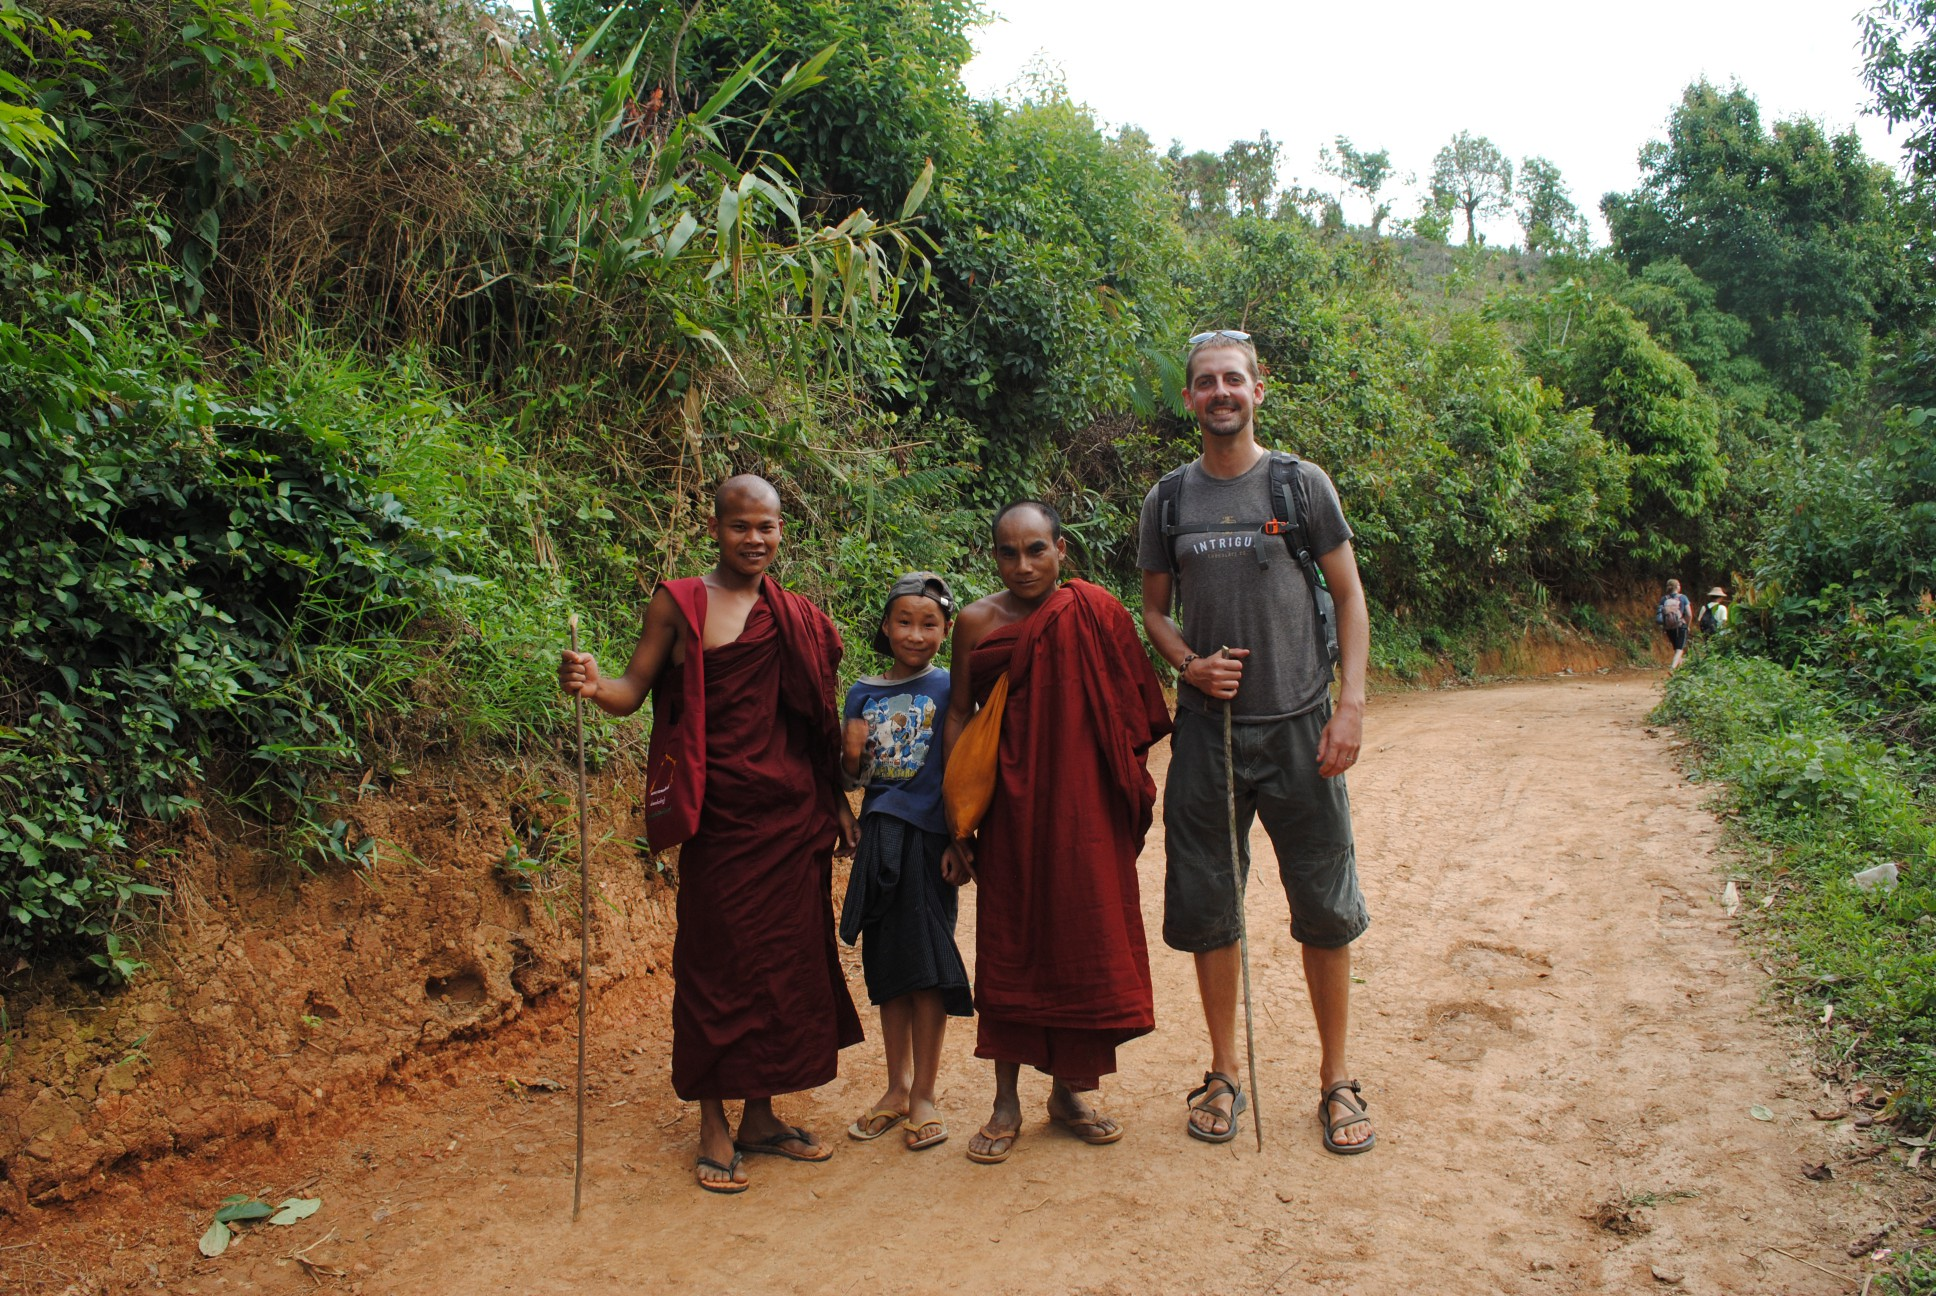 Jason with two monks and a local kid.